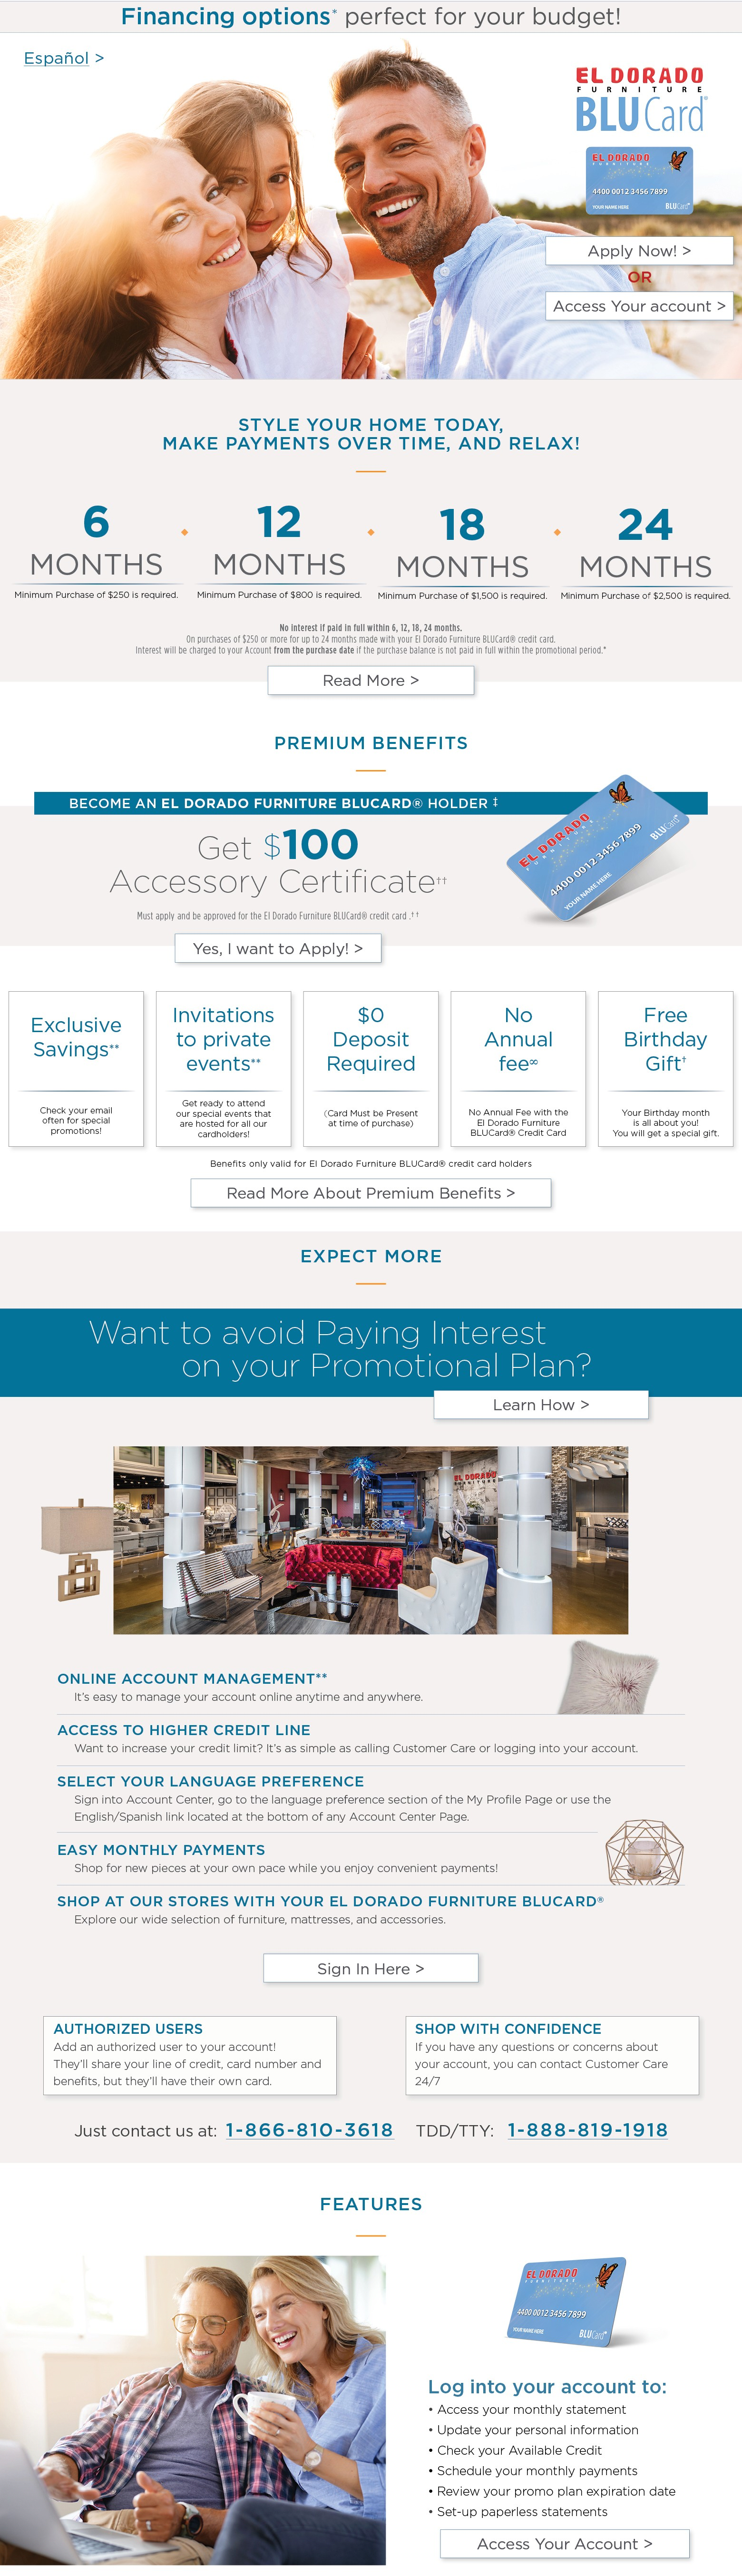 Financing options* perfect for your budget! Español > El Dorado Furniture BLUCard® Apply Now! > OR Access Your account > STYLE YOUR HOME TODAY, MAKE PAYMENTS OVER TIME, AND RELAX! 6 MONTHS Minimum Purchase of $250 is required. 12 MONTHS Minimum Purchase of $800 is required. 18 MONTHS Minimum Purchase of $1,500 is required. Minimum Purchase of $2,500 is required. No interest if paid in full within 6, 12, 18, 24 months. On purchases of $250 or more for up to 24 months made with your El Dorado Furniture BLUCard® credit card. Interest will be charged to your Account from the purchase date if the purchase balance is not paid in full within the promotional period.* Read More > PREMIUM BENEFITS — BECOME AN EL DORADO FURNITURE BLUCARD® HOLDER‡ Get $100 Accessory Certificate‡ Must apply and be approved for the El Dorado Furniture BLUCard® credit card.†† Yes, I want to Apply! > Exclusive Savings** - Check your email often for special promotions! Invitations to private events** - Get ready to attend our special events that are hosted for all our cardholders! No Annual fee? - No Annual Fee with the El Dorado Furniture BLUCard® Credit Card. $0 Deposit Required (Card Must be Presented time of purchase). Free Birthday Gift† - Your Birthday month is all about you! You will get a special gift. Benefits only valid for El Dorado Furniture BLUCard® credit card holders. Read More About Premium Benefits > EXPECT MORE — Want to avoid Paying Interest on your Promotional Plan? Learn How > ONLINE ACCOUNT MANAGEMENT**: It's easy to manage your account online anytime and anywhere. ACCESS TO HIGHER CREDIT LINE: Want to increase your credit limit? It's as simple as calling Customer Care or logging into your account. SELECT YOUR LANGUAGE PREFERENCE: Sign into Account Center, go to the language preference section of the My Profile Page or use the English/Spanish link located at the bottom of any Account Center Page. EASY MONTHLY PAYMENTS: Shop for new pieces at your own pace while you enjoy convenient payments! SHOP AT OUR STORES WITH YOUR EL DORADO FURNITURE BLUCARD®: Explore our wide selection of furniture, mattresses, and accessories. Sign In Here > AUTHORIZED USERS: Add an authorized user to your account! They'll share your line of credit, card number and benefits, but they'll have their own card. SHOP WITH CONFIDENCE: If you have any questions or concerns about your account, you can contact Customer Care 24/7. Just contact us at: 1-866-810-3618 TDD/TTY: 1-888-819-1918. FEATURES — Log into your account to: Access your monthly statement; Update your personal information; Check your Available Credit; Schedule your monthly payments; Review your promo plan expiration date; Set-up paperless statements Access Your Account >